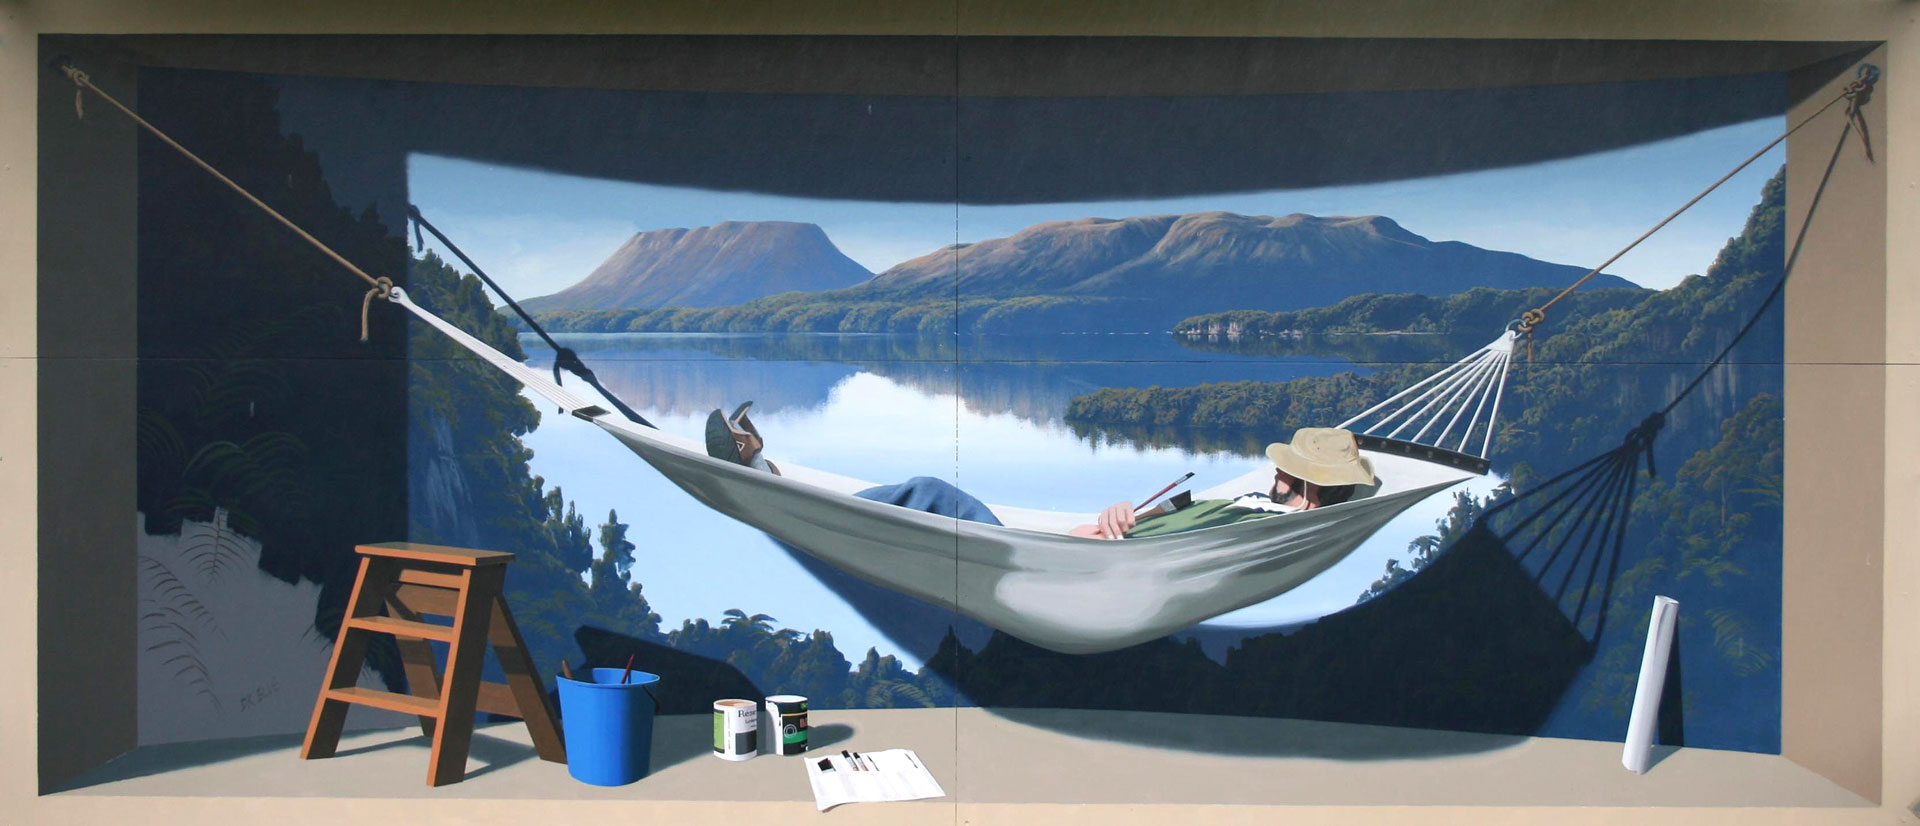 2010-1920x826 Illusion murals